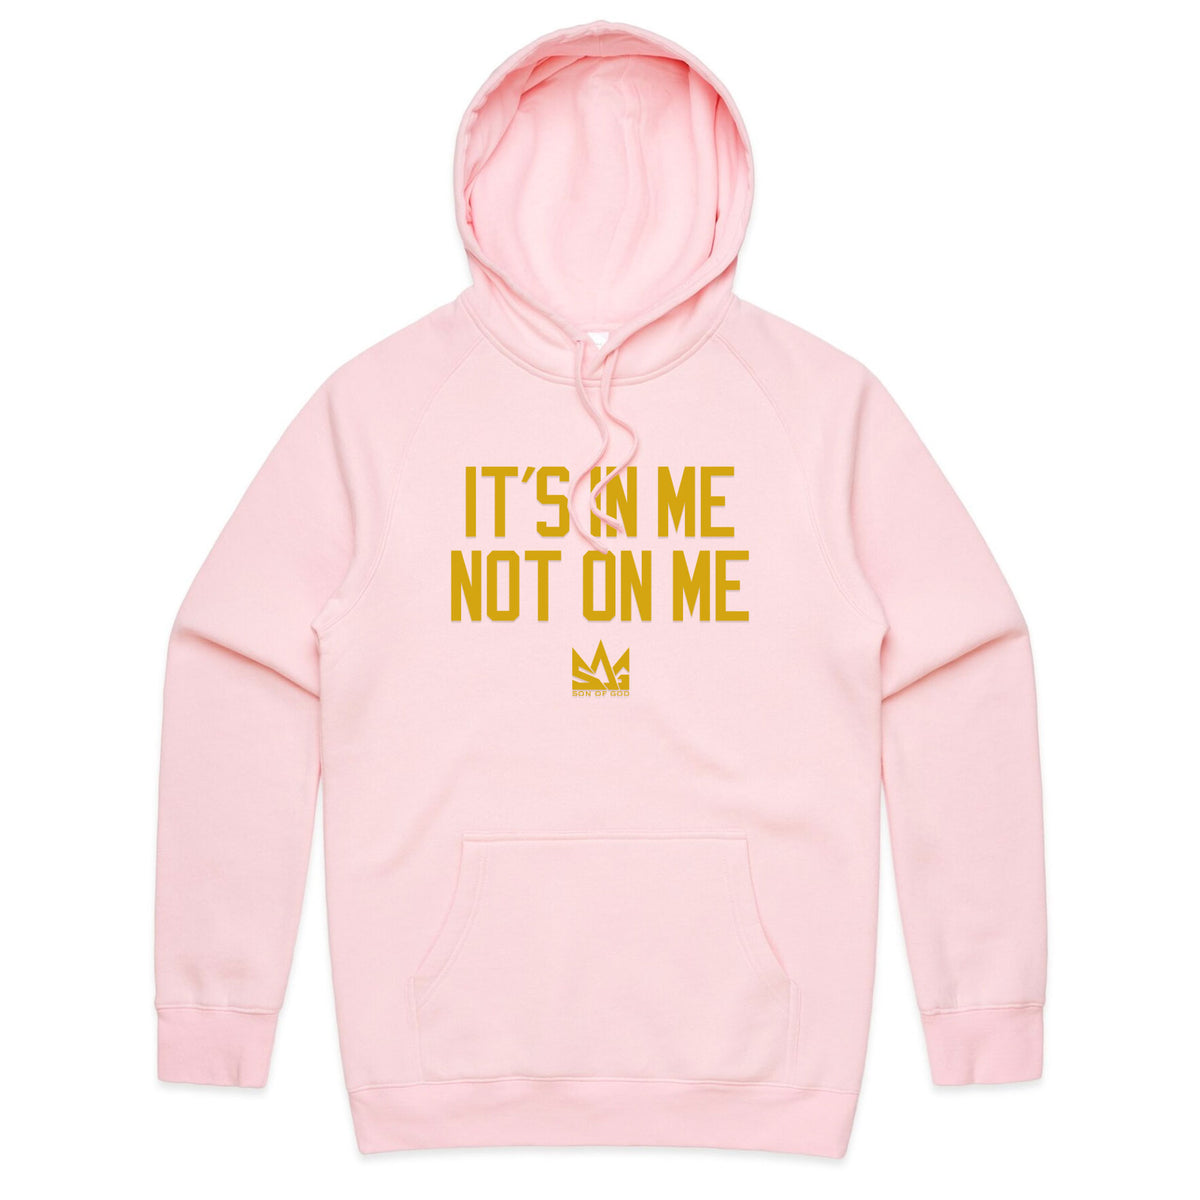 What Are You Made Of? Hoodie